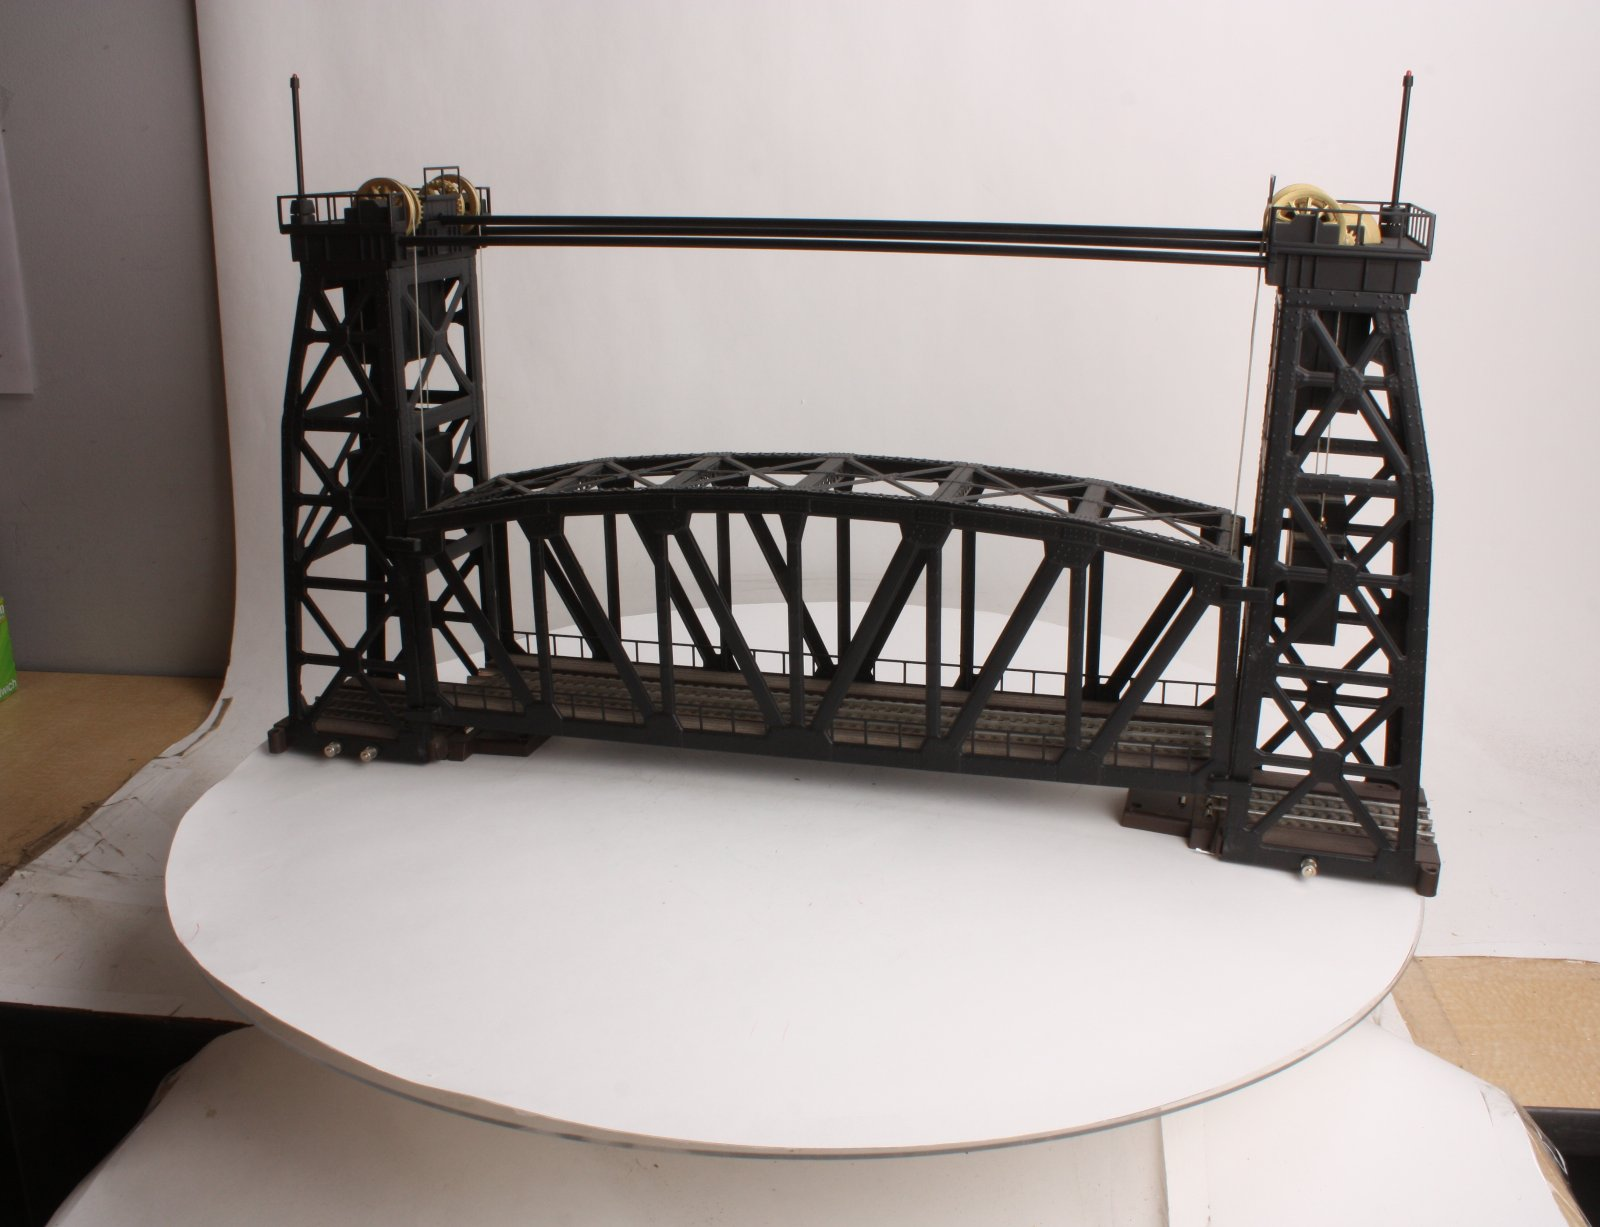 Lionel 6-14167 213 Operating Lift Bridge 023922141675 Lionel 6-14167